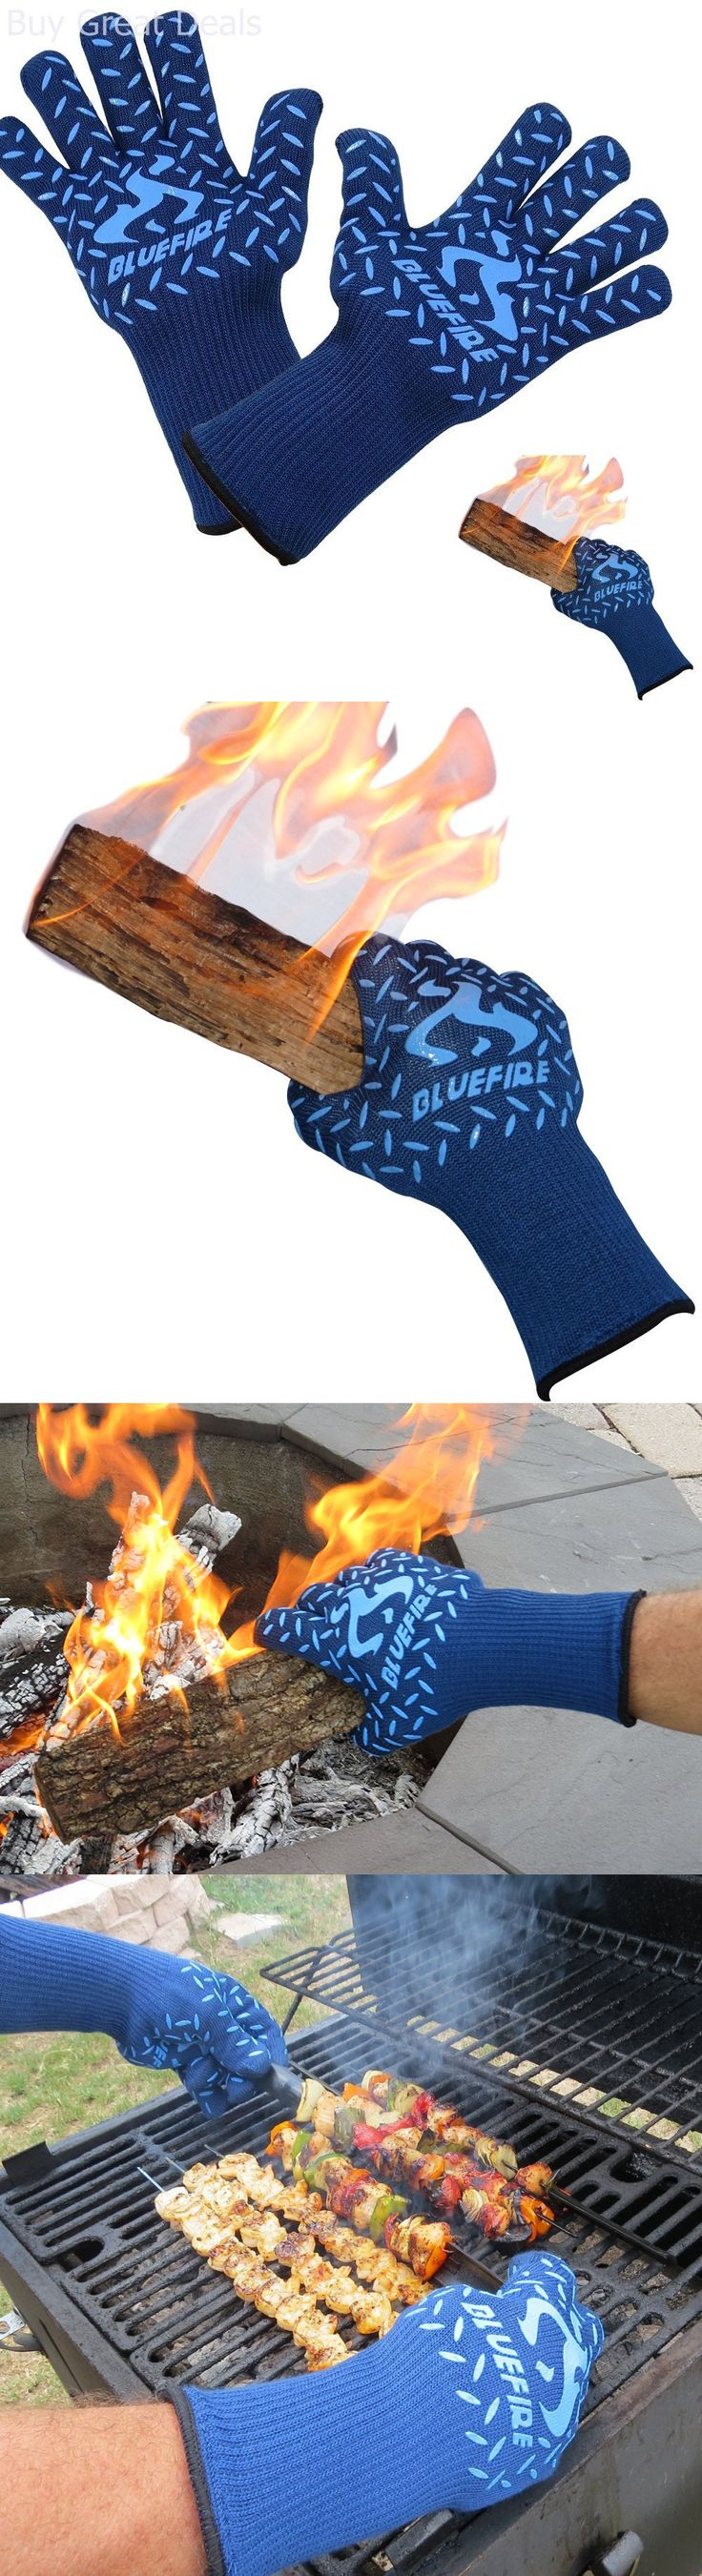 Oven Mitts and Potholders 20661: Heat Resistant Gloves Oven Bbq Grilling Professional Kitchen Cooking Accessories -> BUY IT NOW ONLY: $41.33 on eBay!